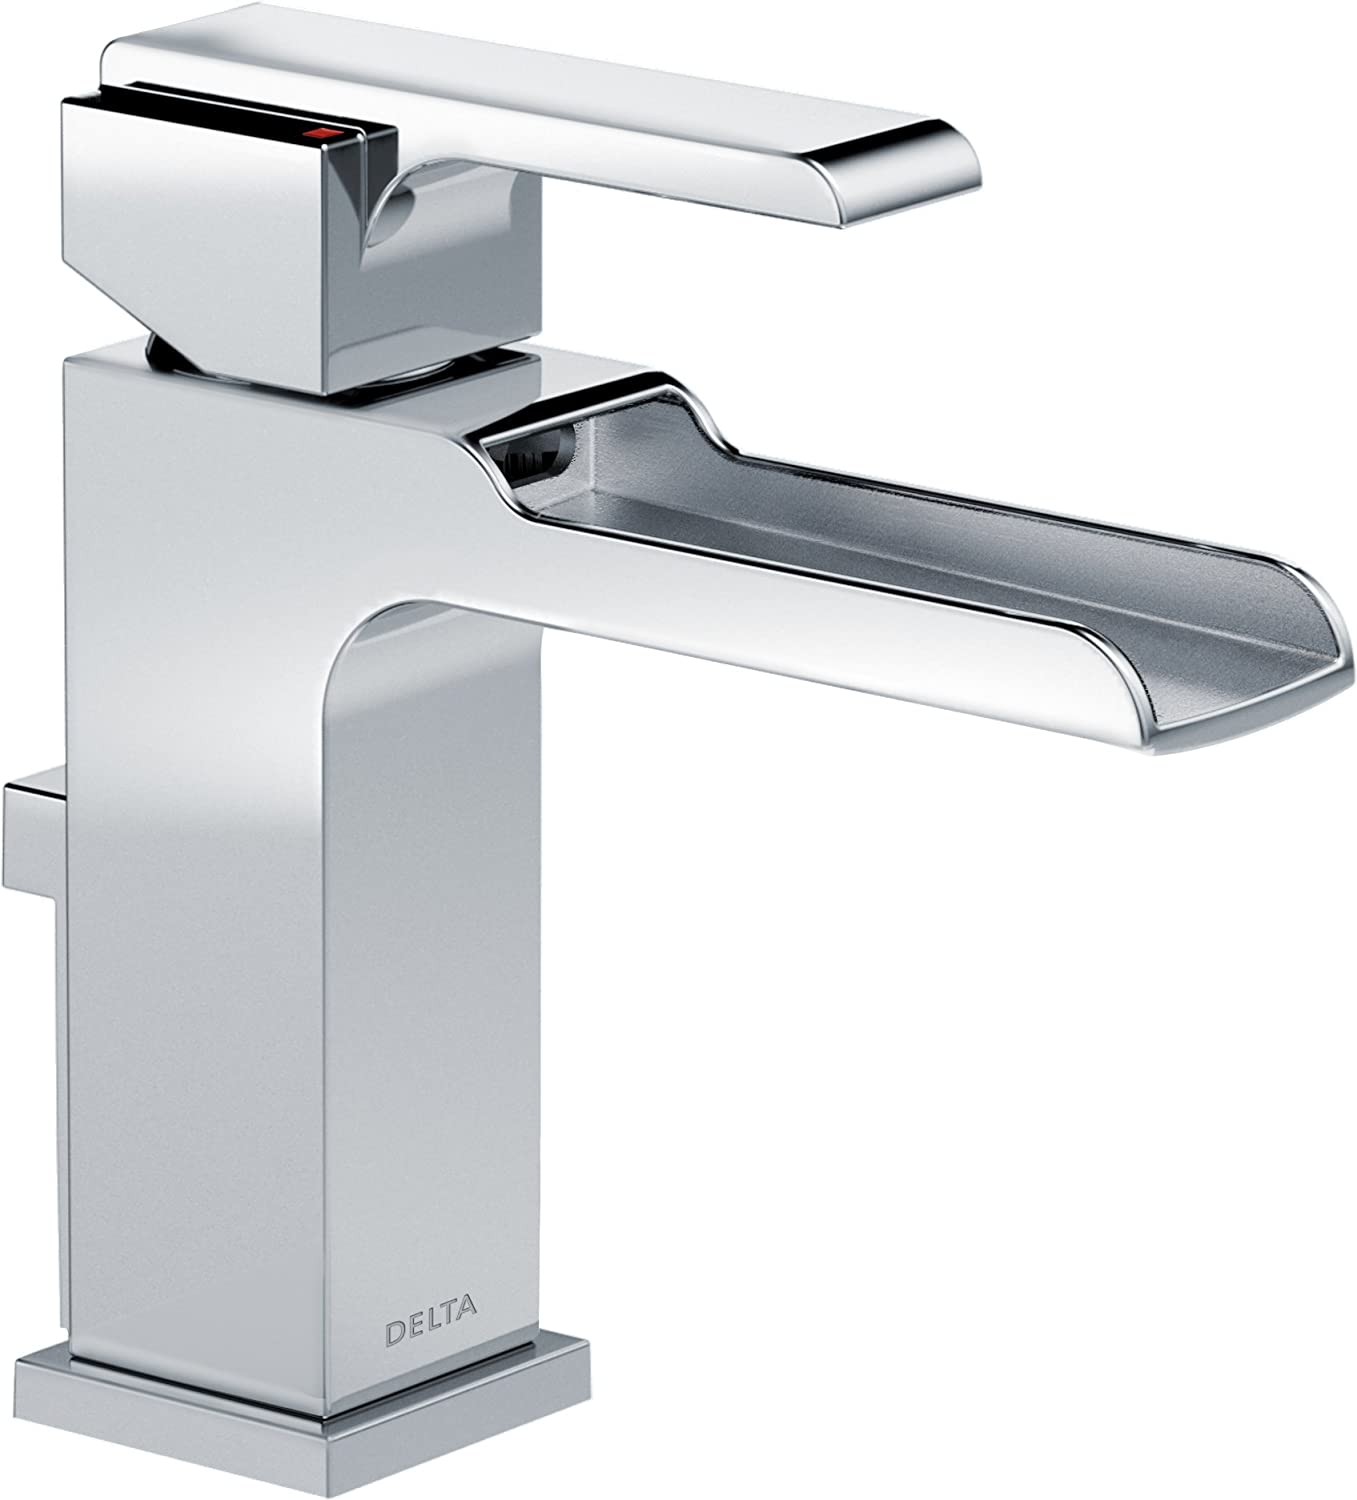 Delta Faucet 568LF MPU Ara Single Handle Single Hole Waterfall Bathroom  Faucet, Chrome     Amazon.com